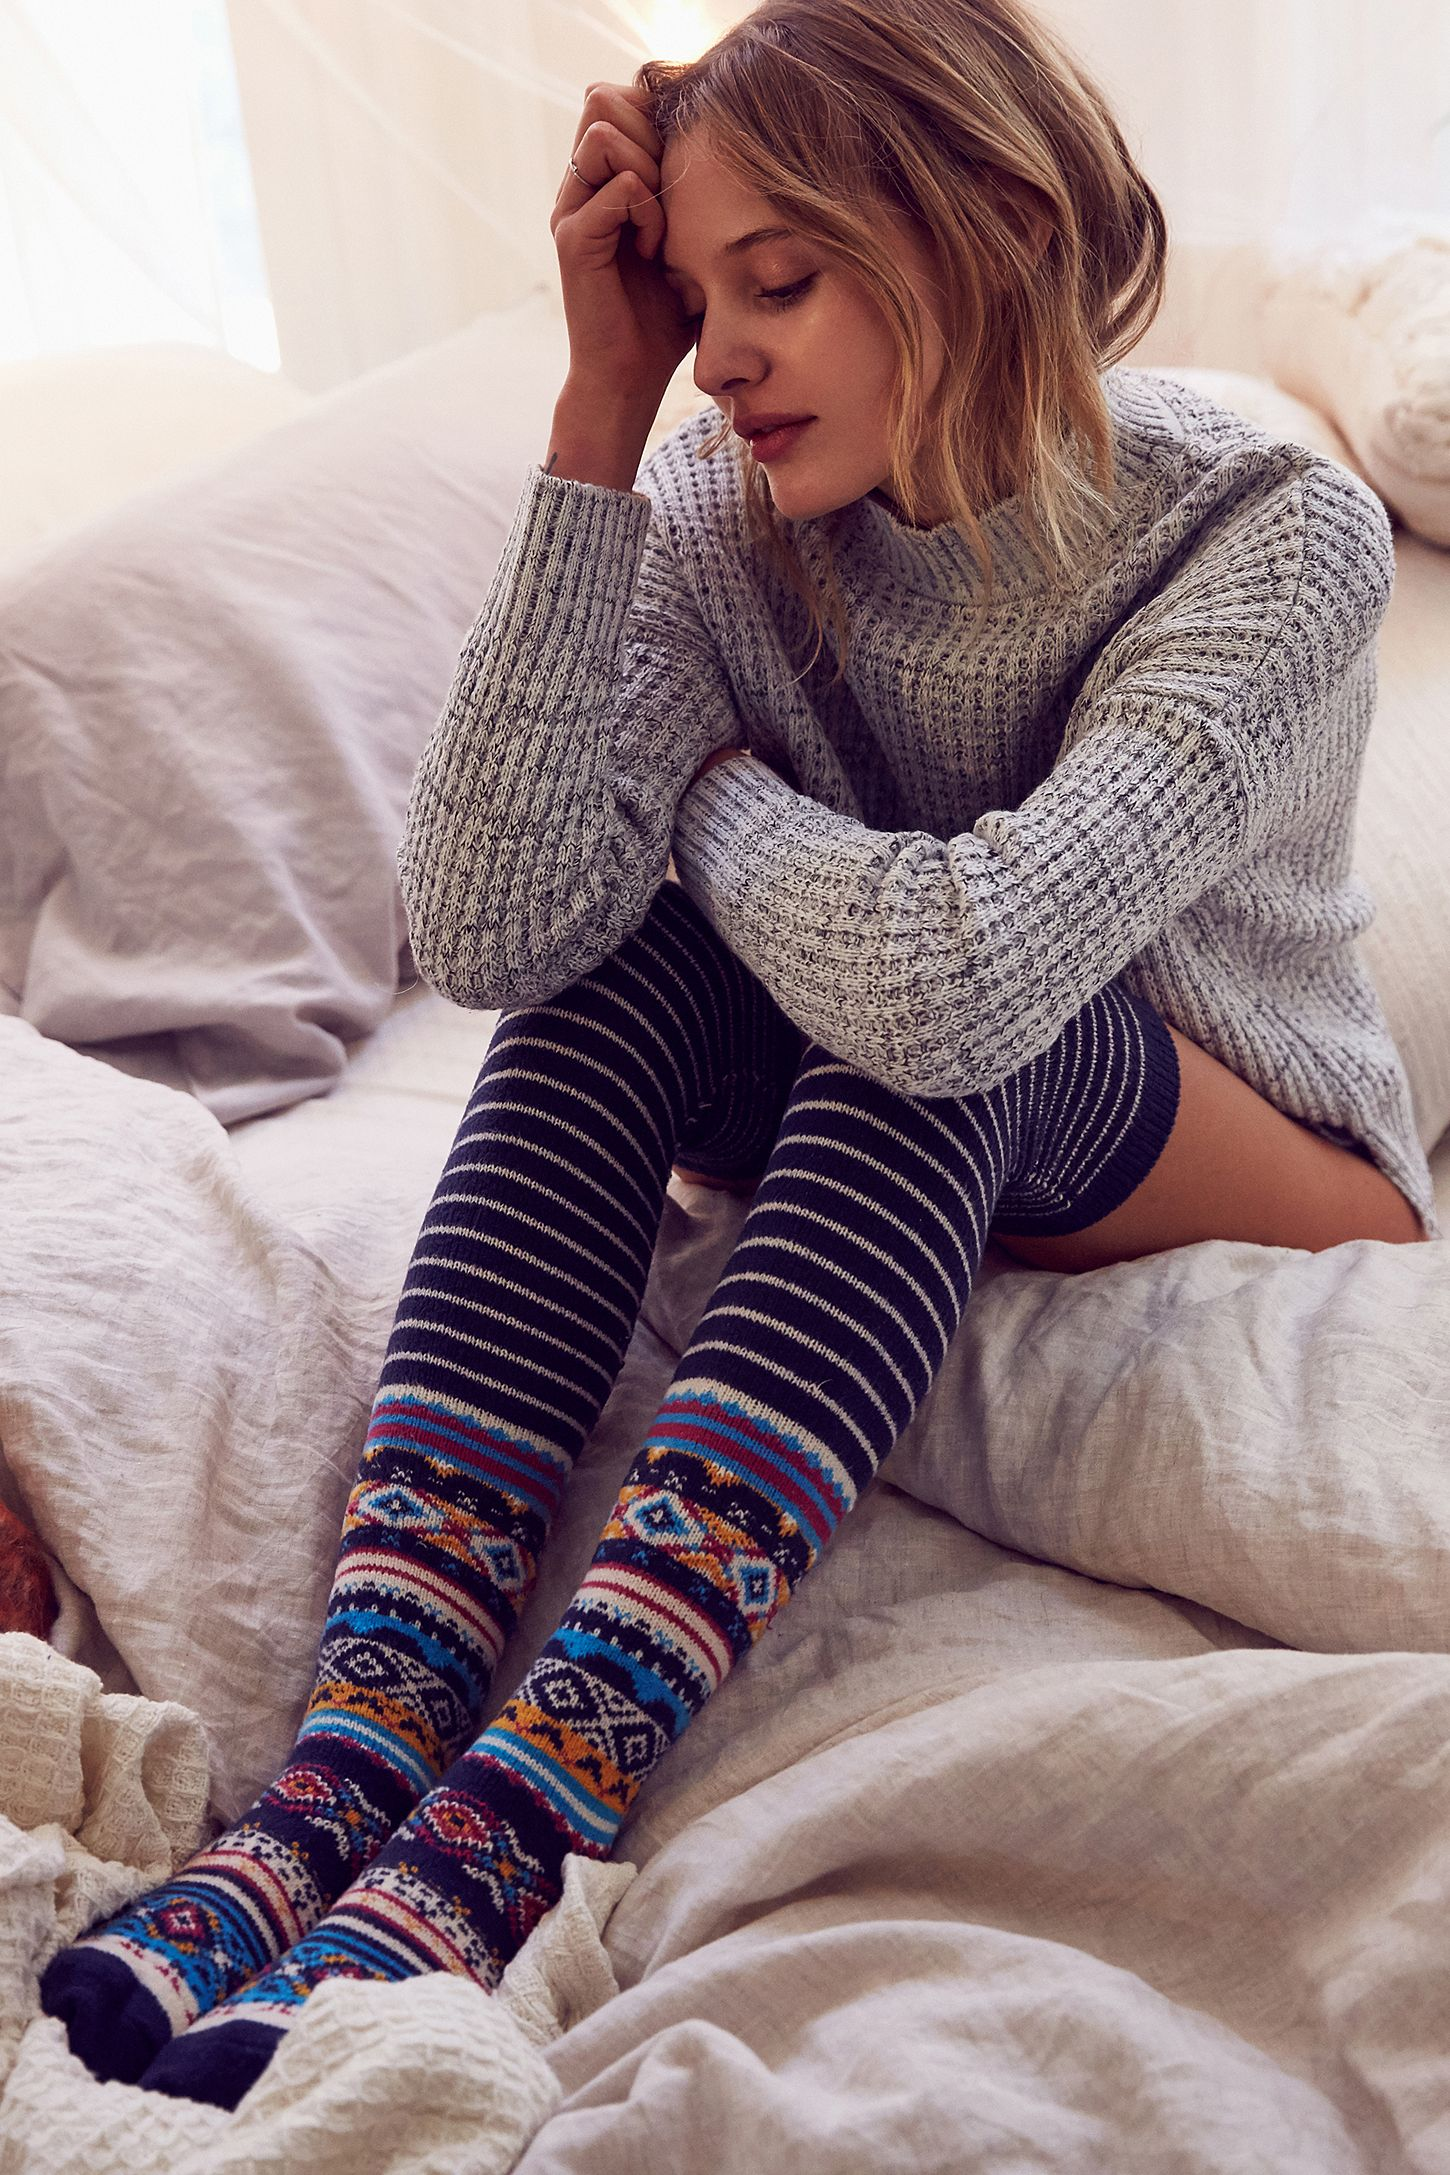 66eaadd1491 Get Our Emails. Sign up to receive Urban Outfitters ...